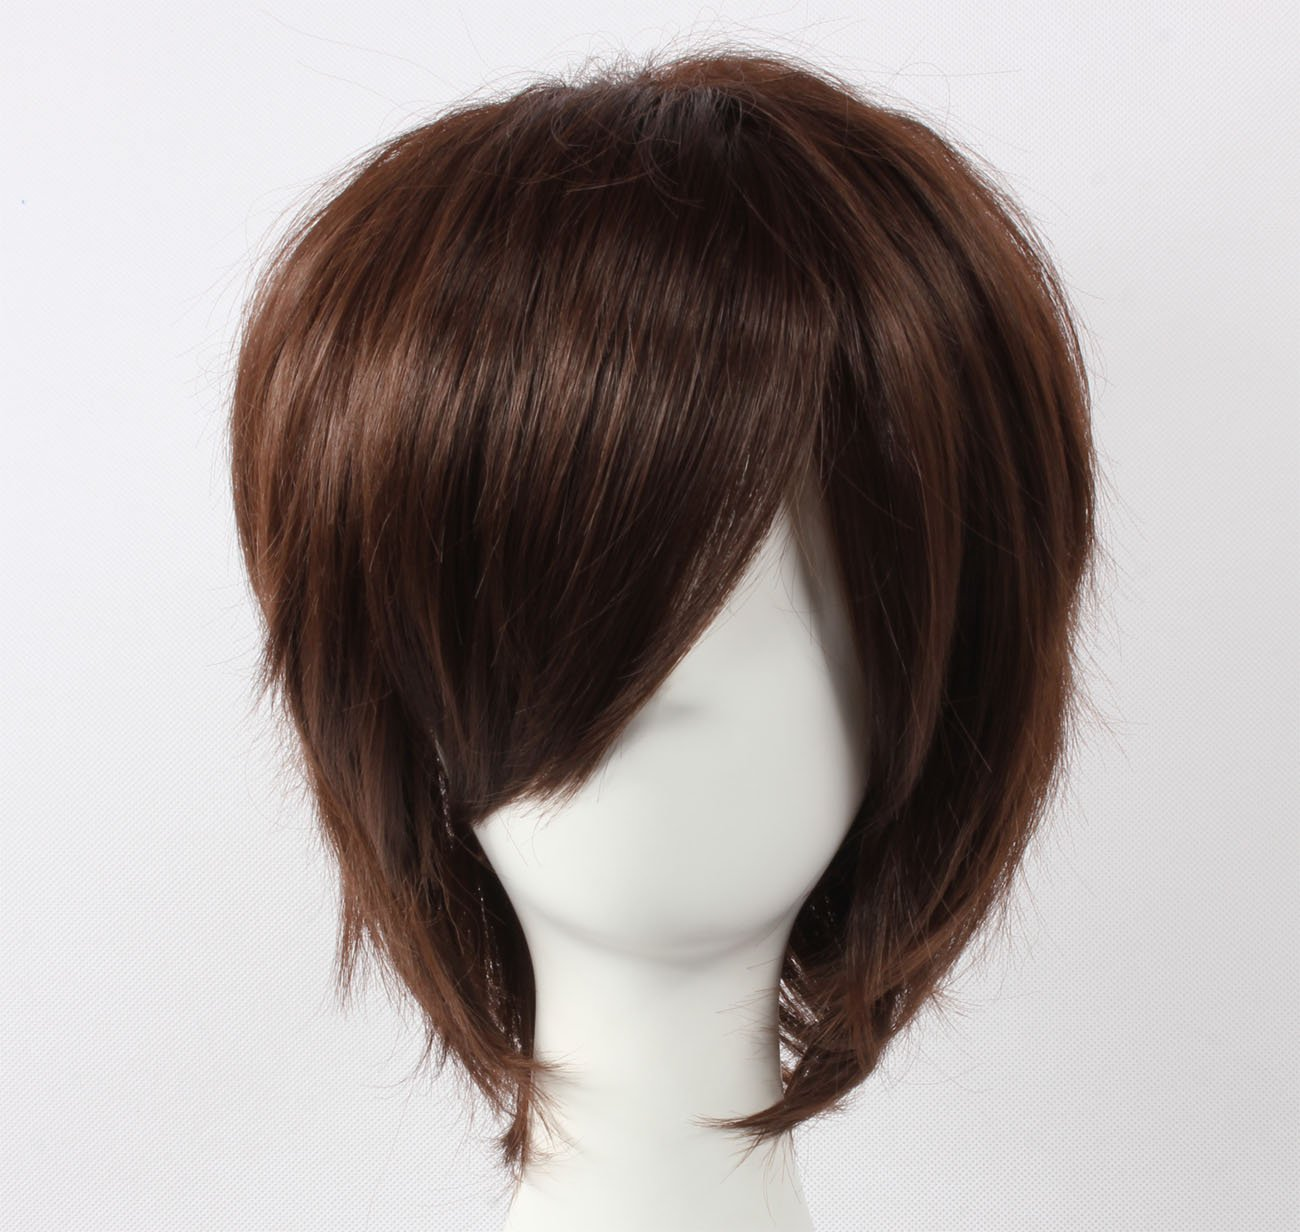 Coolsky Wig Dark Brown Wig Short Dark Brown Straight Wig Code Geass Wigs